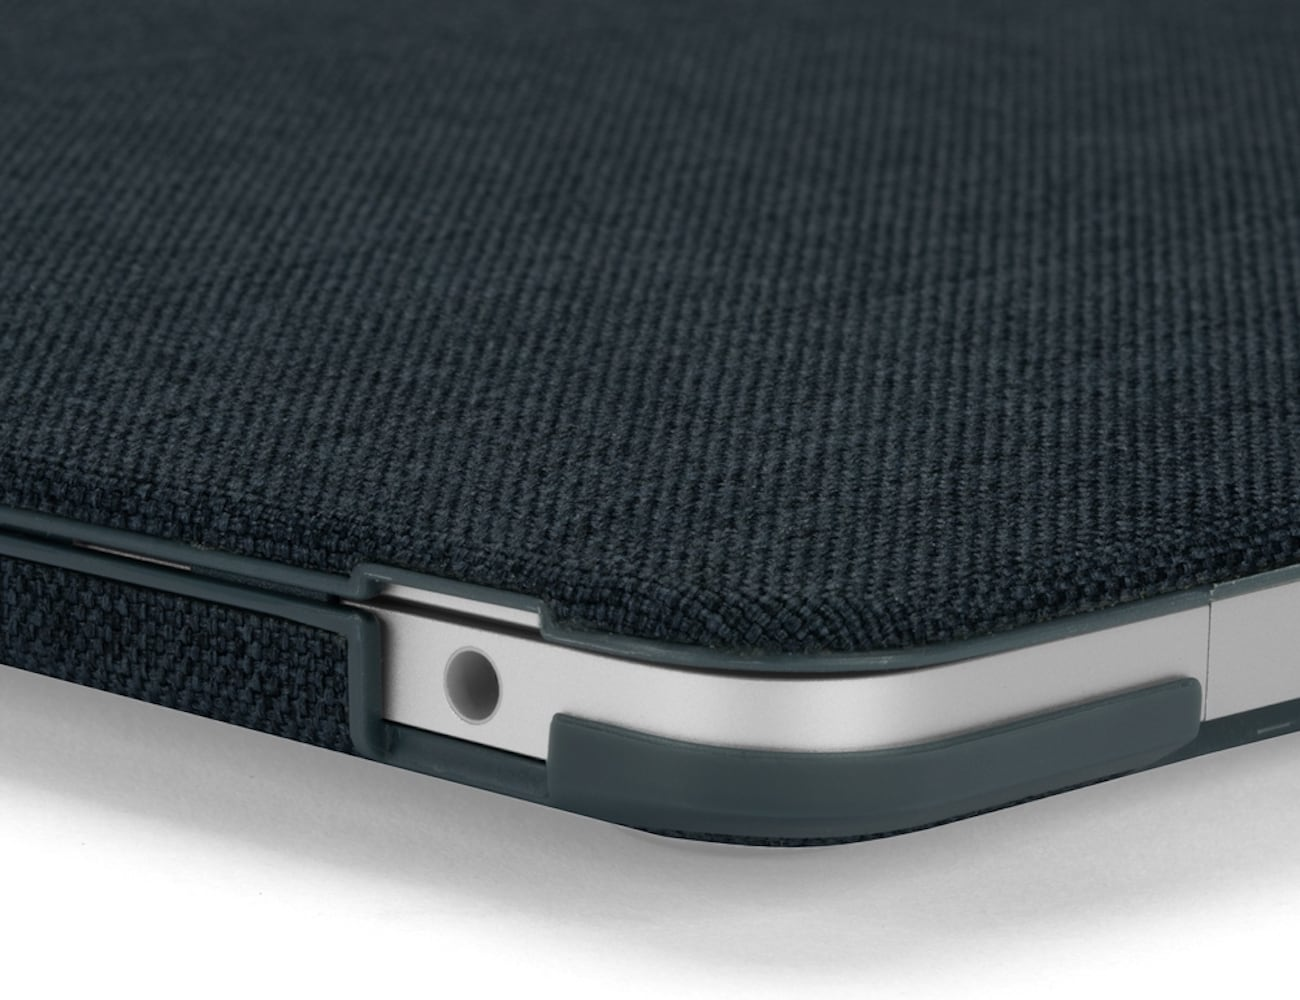 Incase MacBook Textured Hardshell Laptop Case is an achievement in both form and function